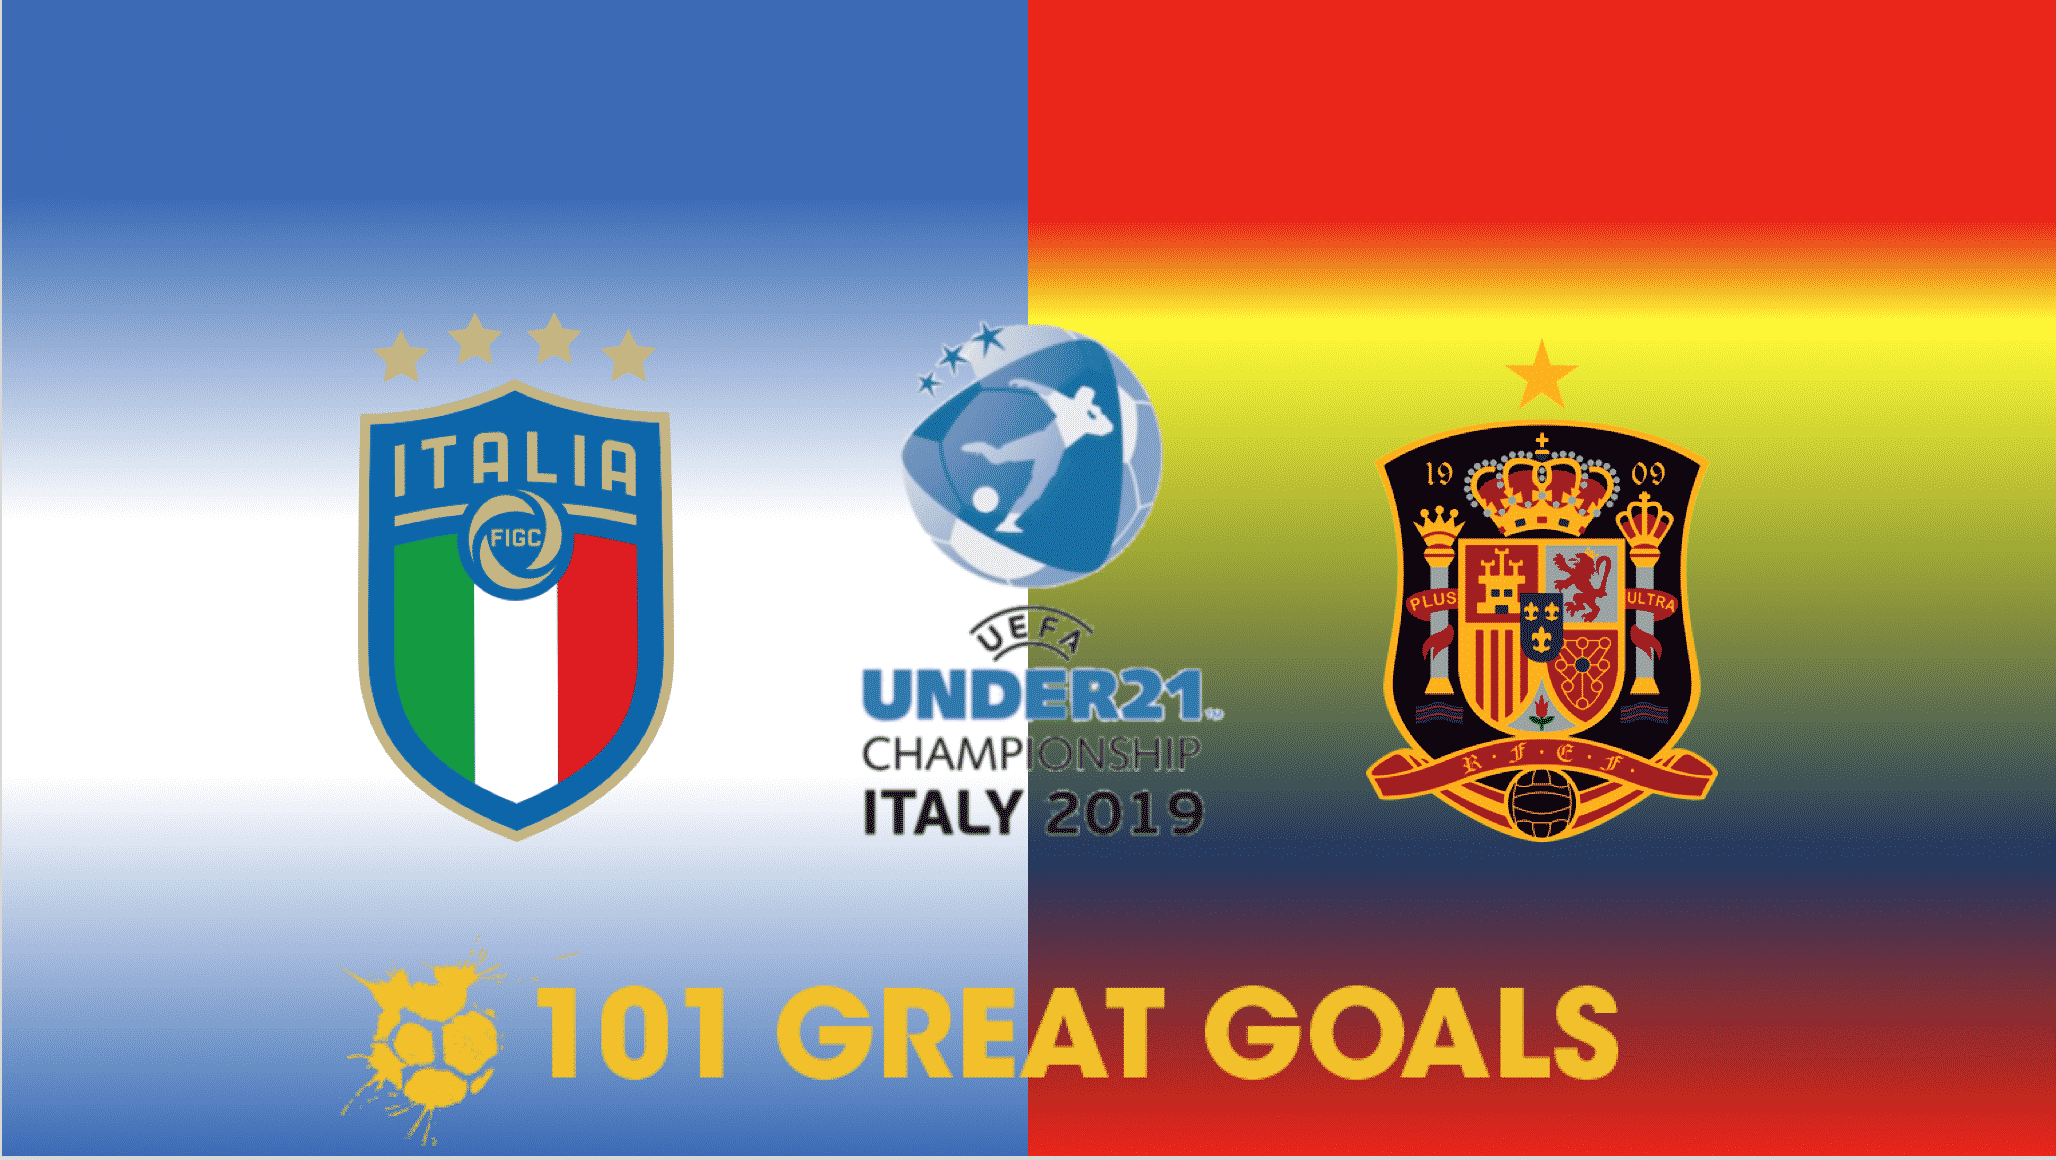 Italy U21 vs Spain U21 live streaming